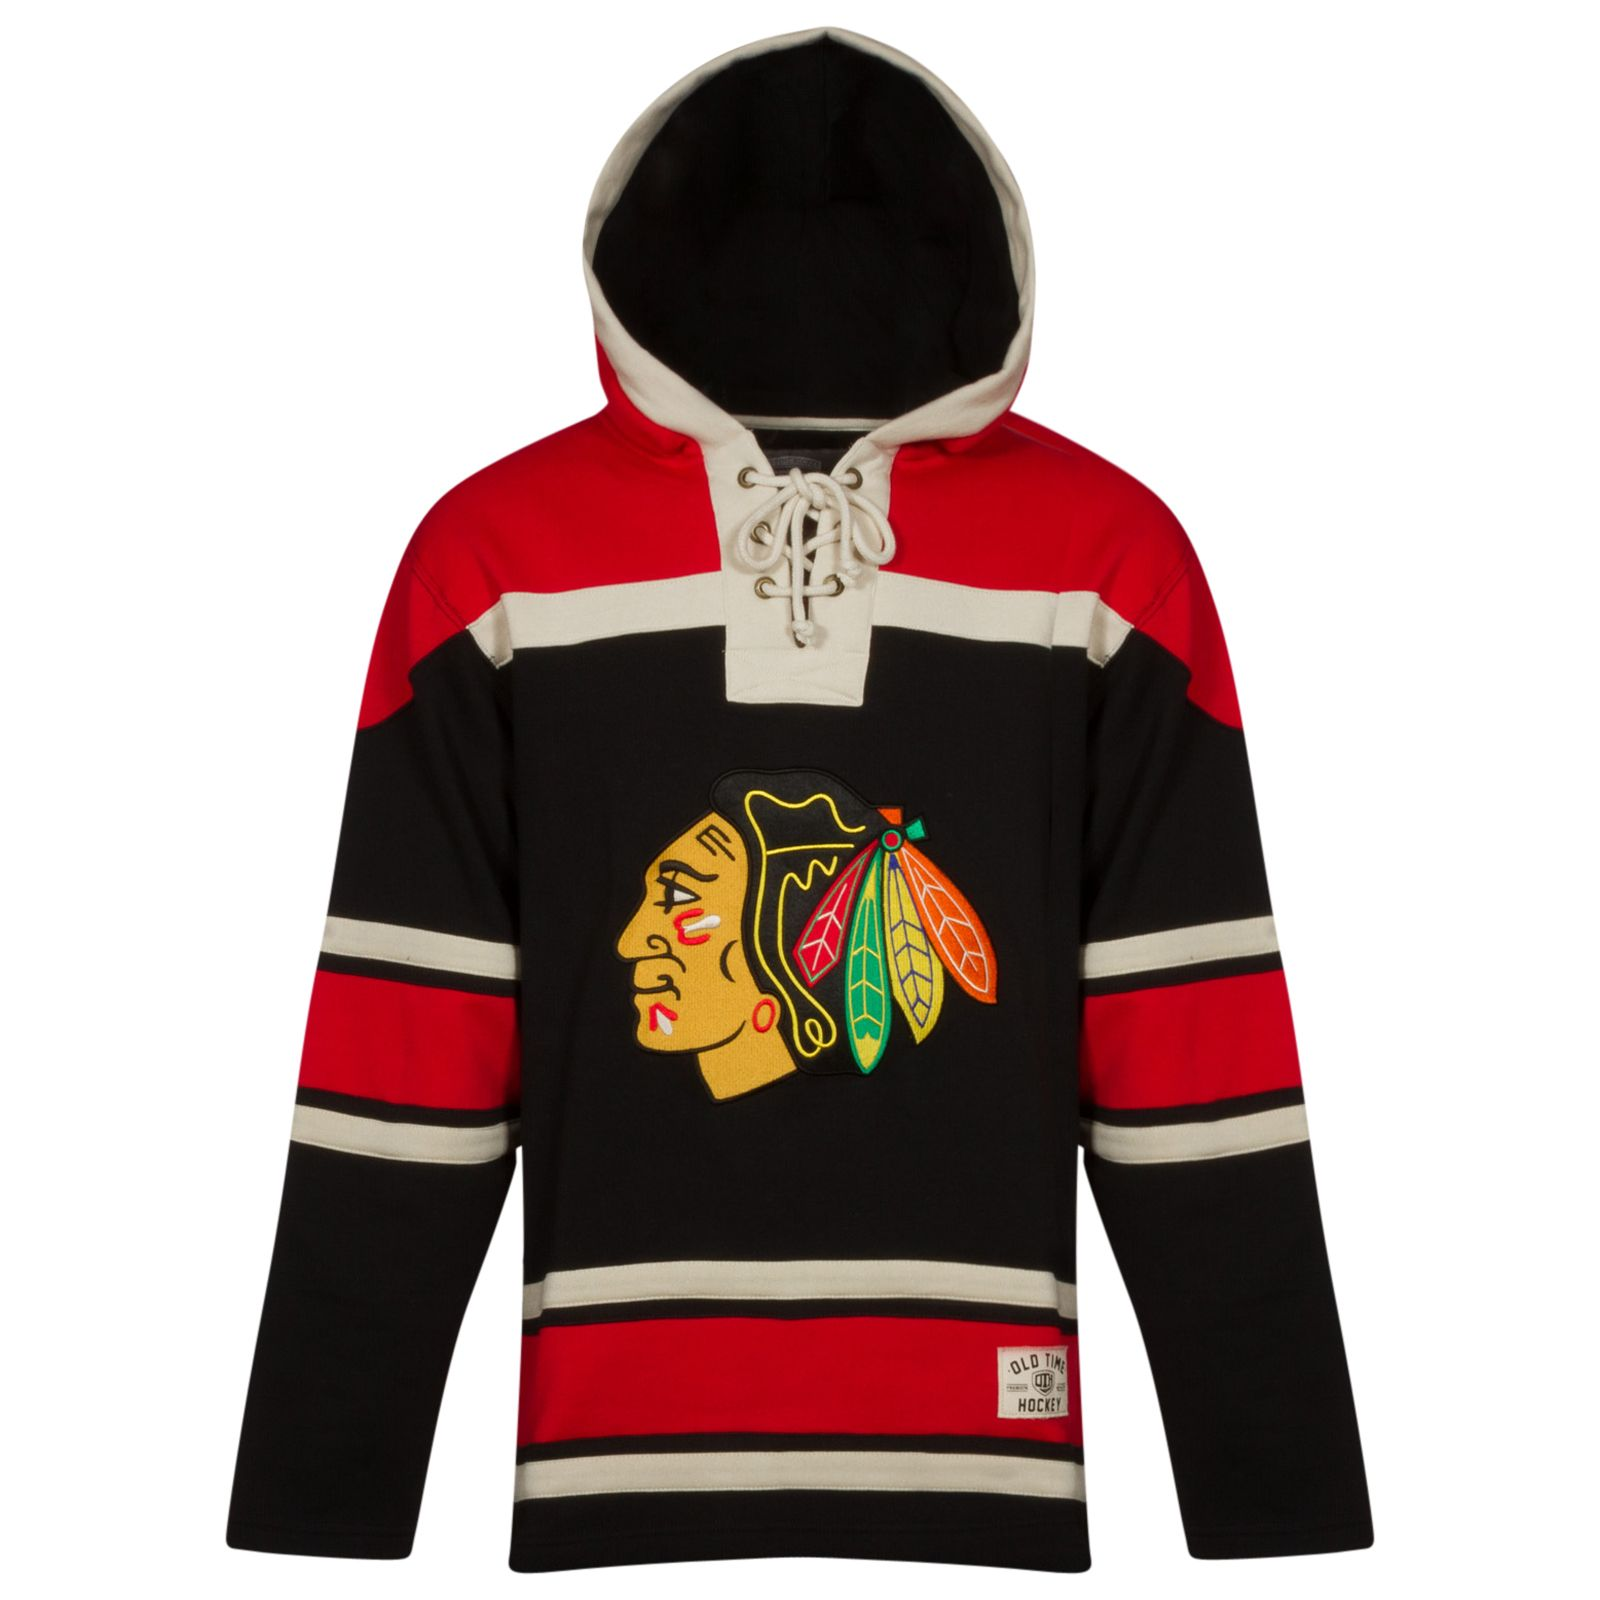 2555ffca5 Chicago Blackhawks Men s 2015 Black Alternate Lace Hoodie by Old Time Hockey   Chicago  Blackhawks  ChicagoBlackhawks